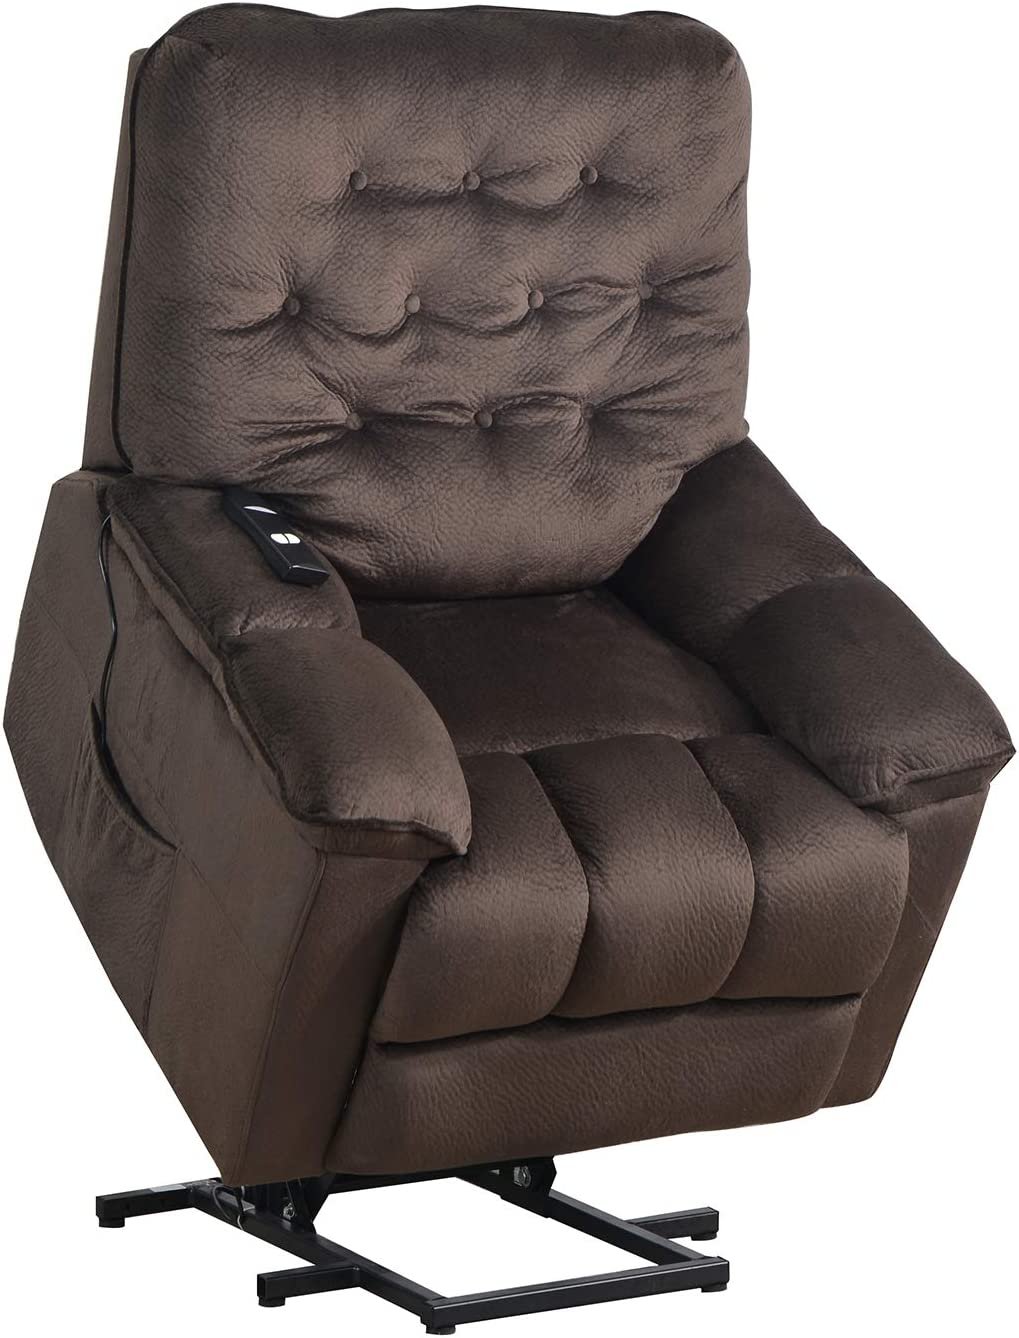 Merax Power Lift Recliner Chair Lazy Sofa for Elderly, Heavy-Duty Fuction with Remote Control, Office or Living Room, Brown